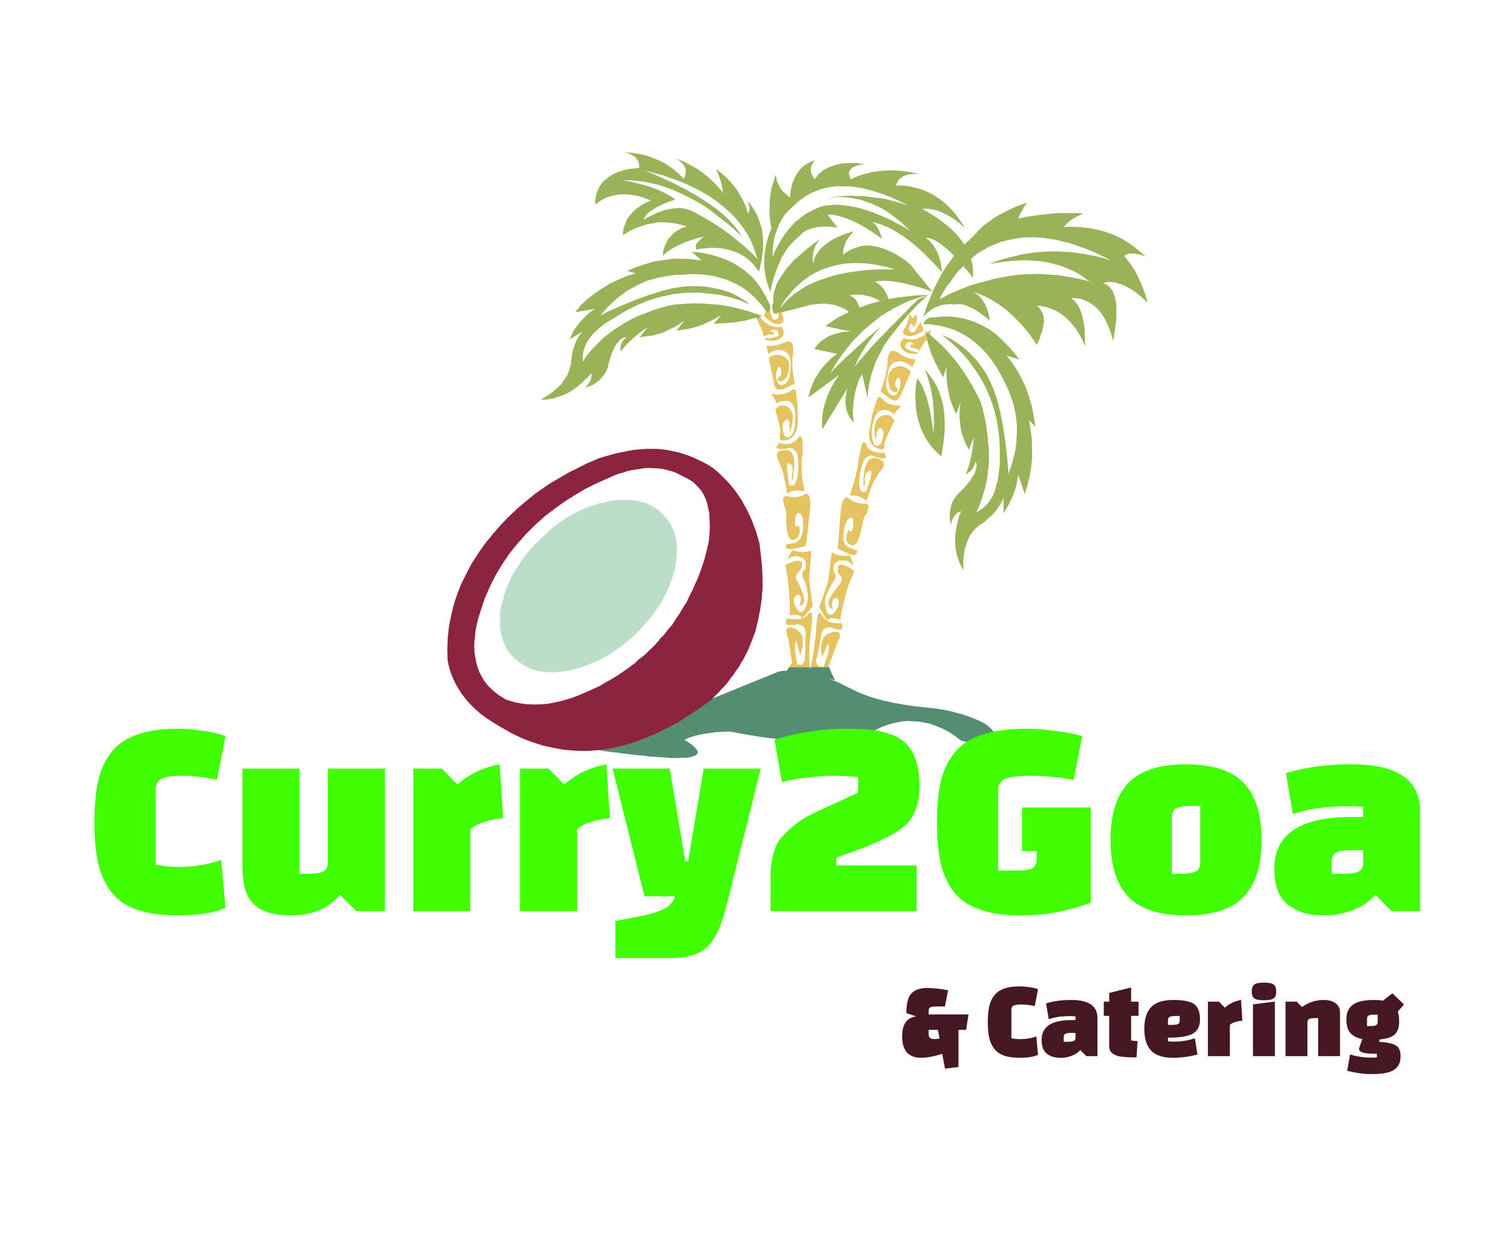 Curry2Goa Catering